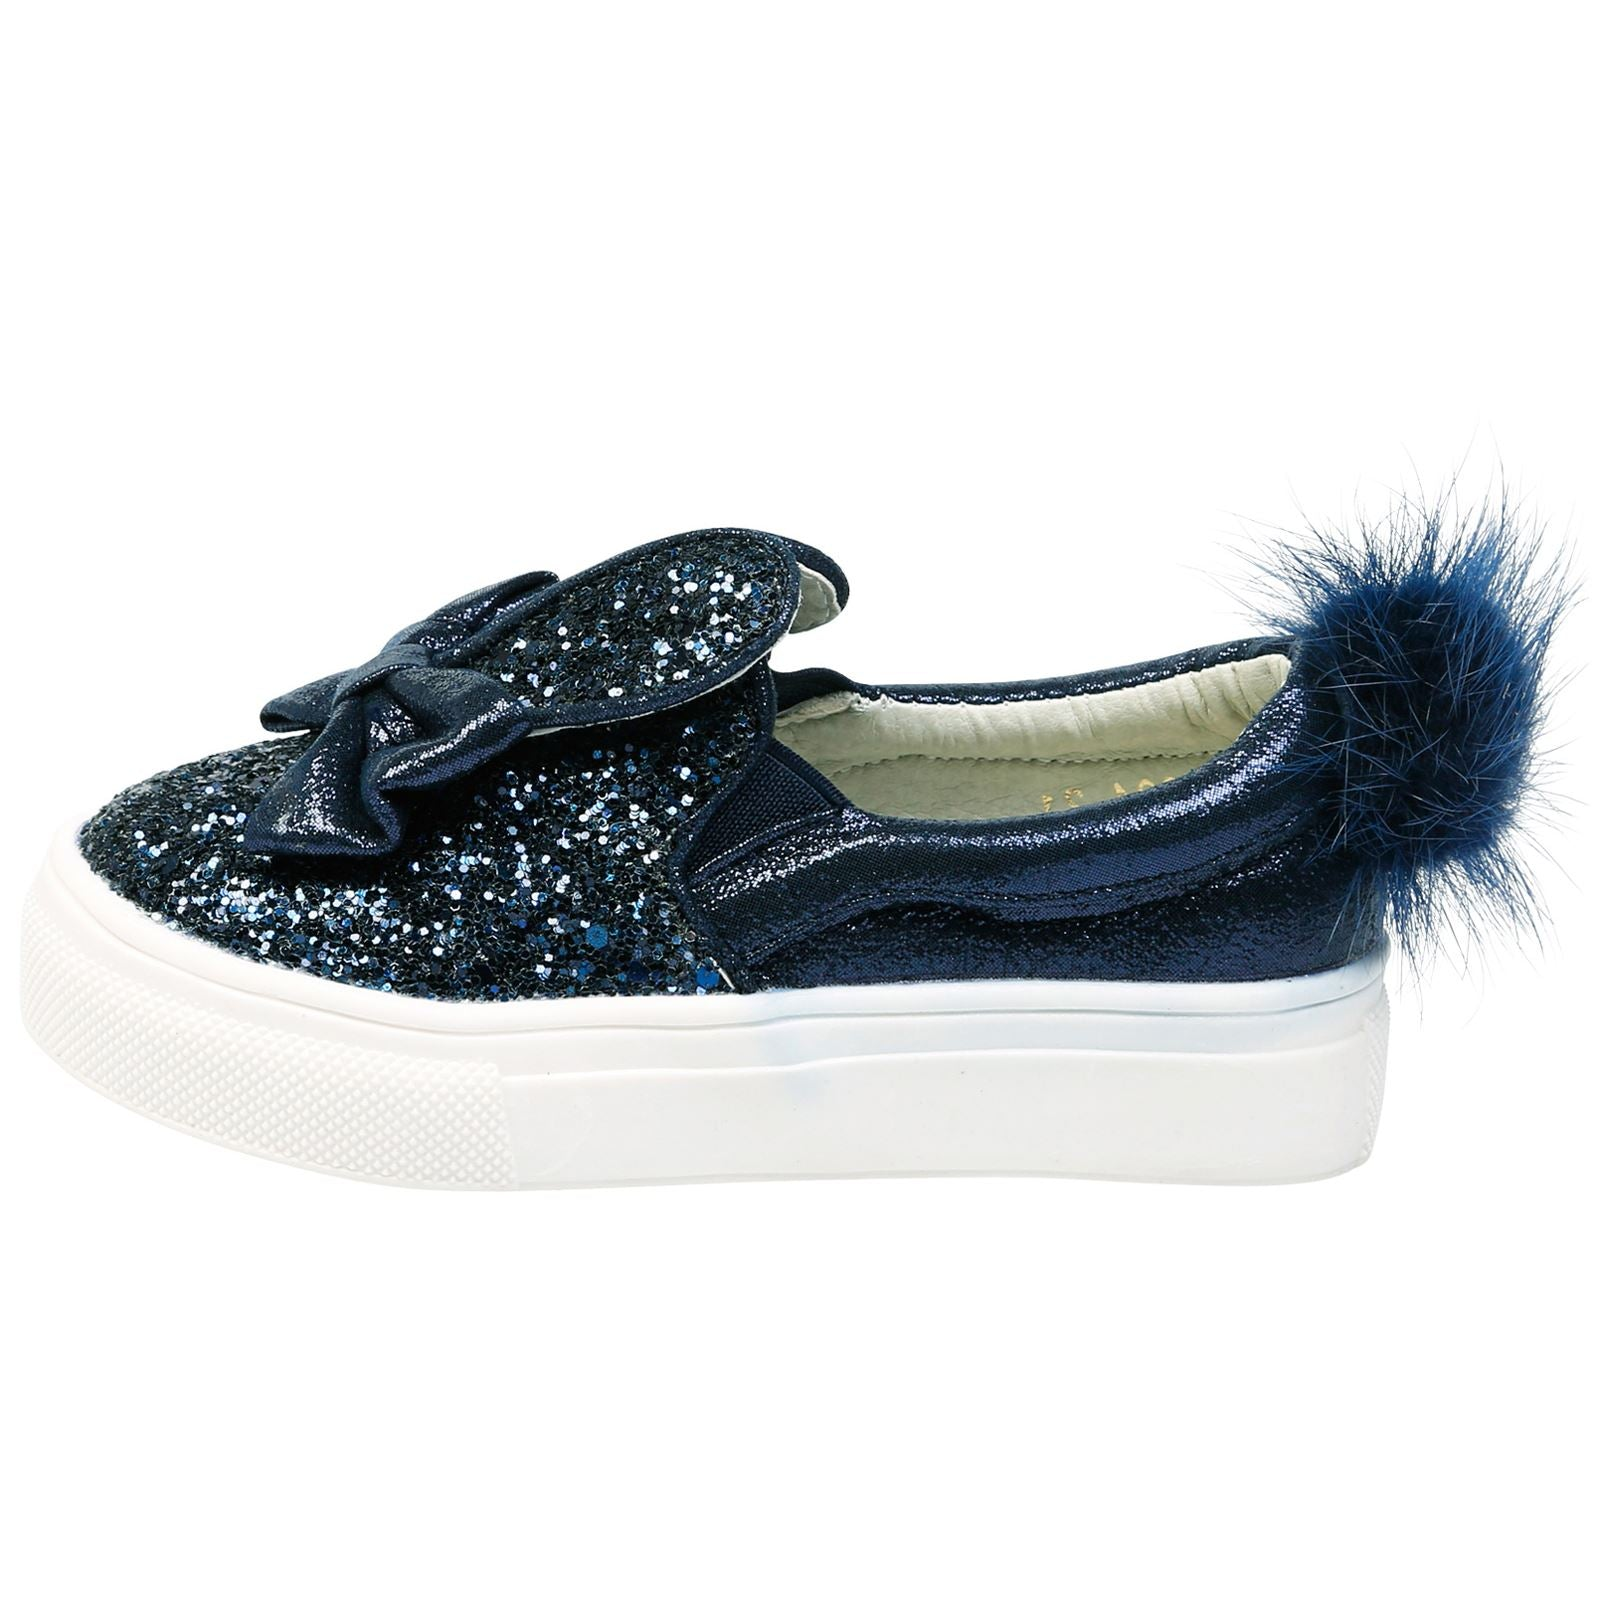 Bunny Girls Glitter Pom Pom Plimsolls in Navy - Feet First Fashion